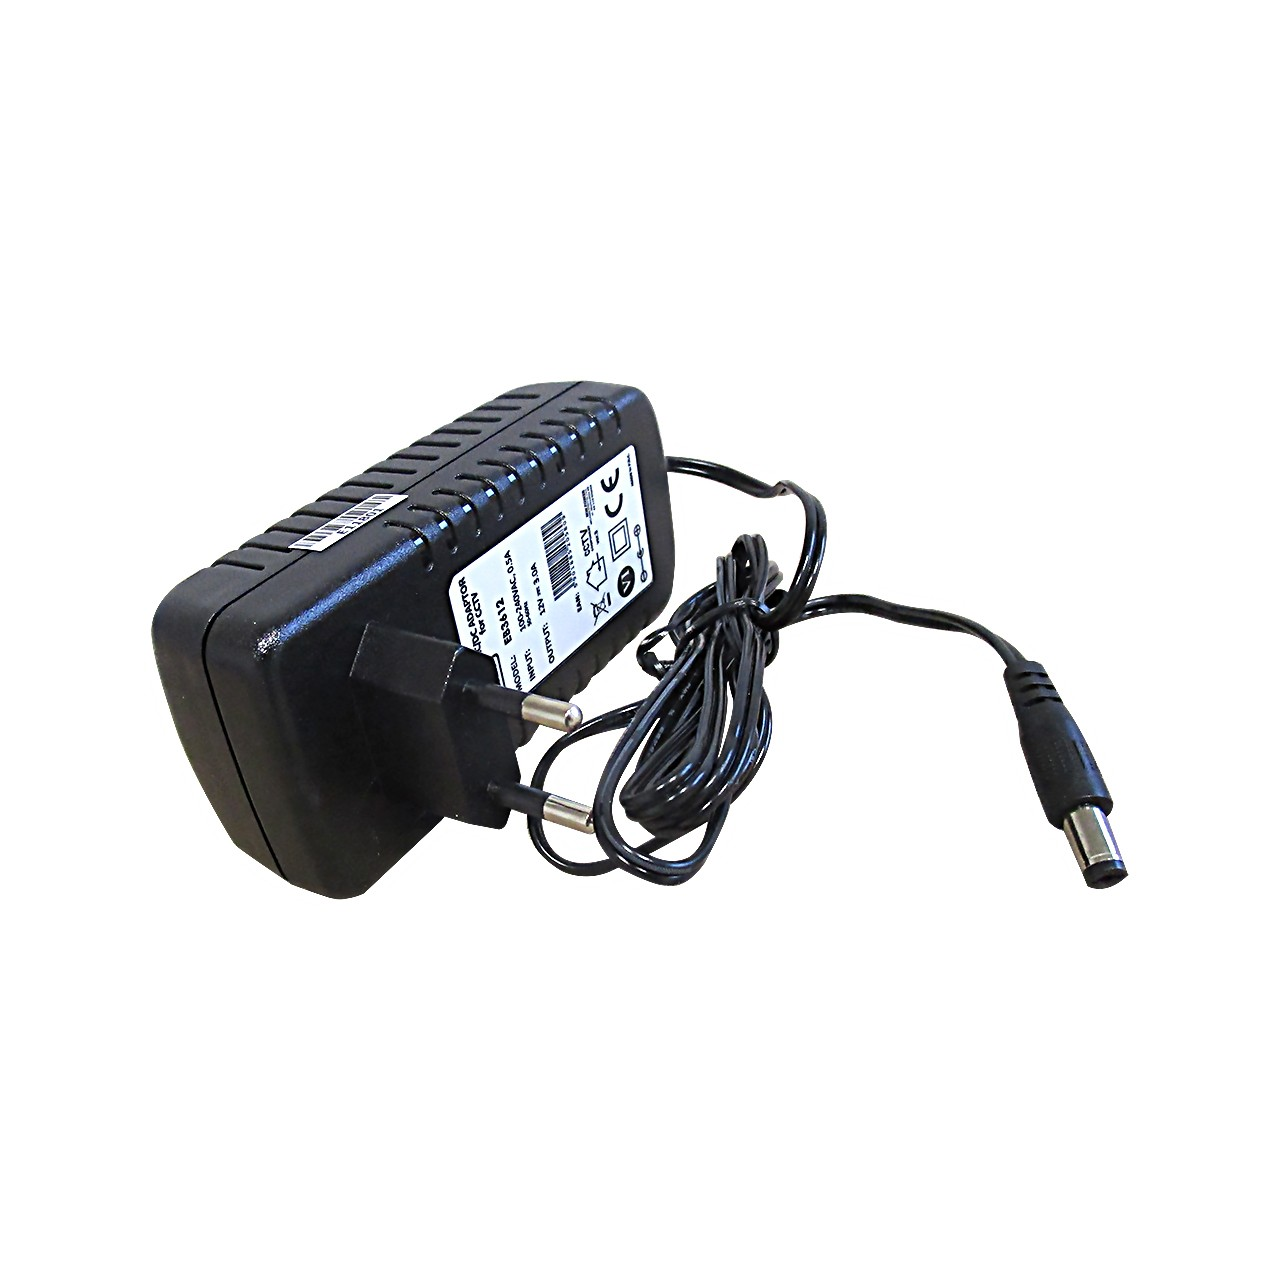 Eclairage Led 24 Volts Alimentation Led 24 W Prise 12 Volts